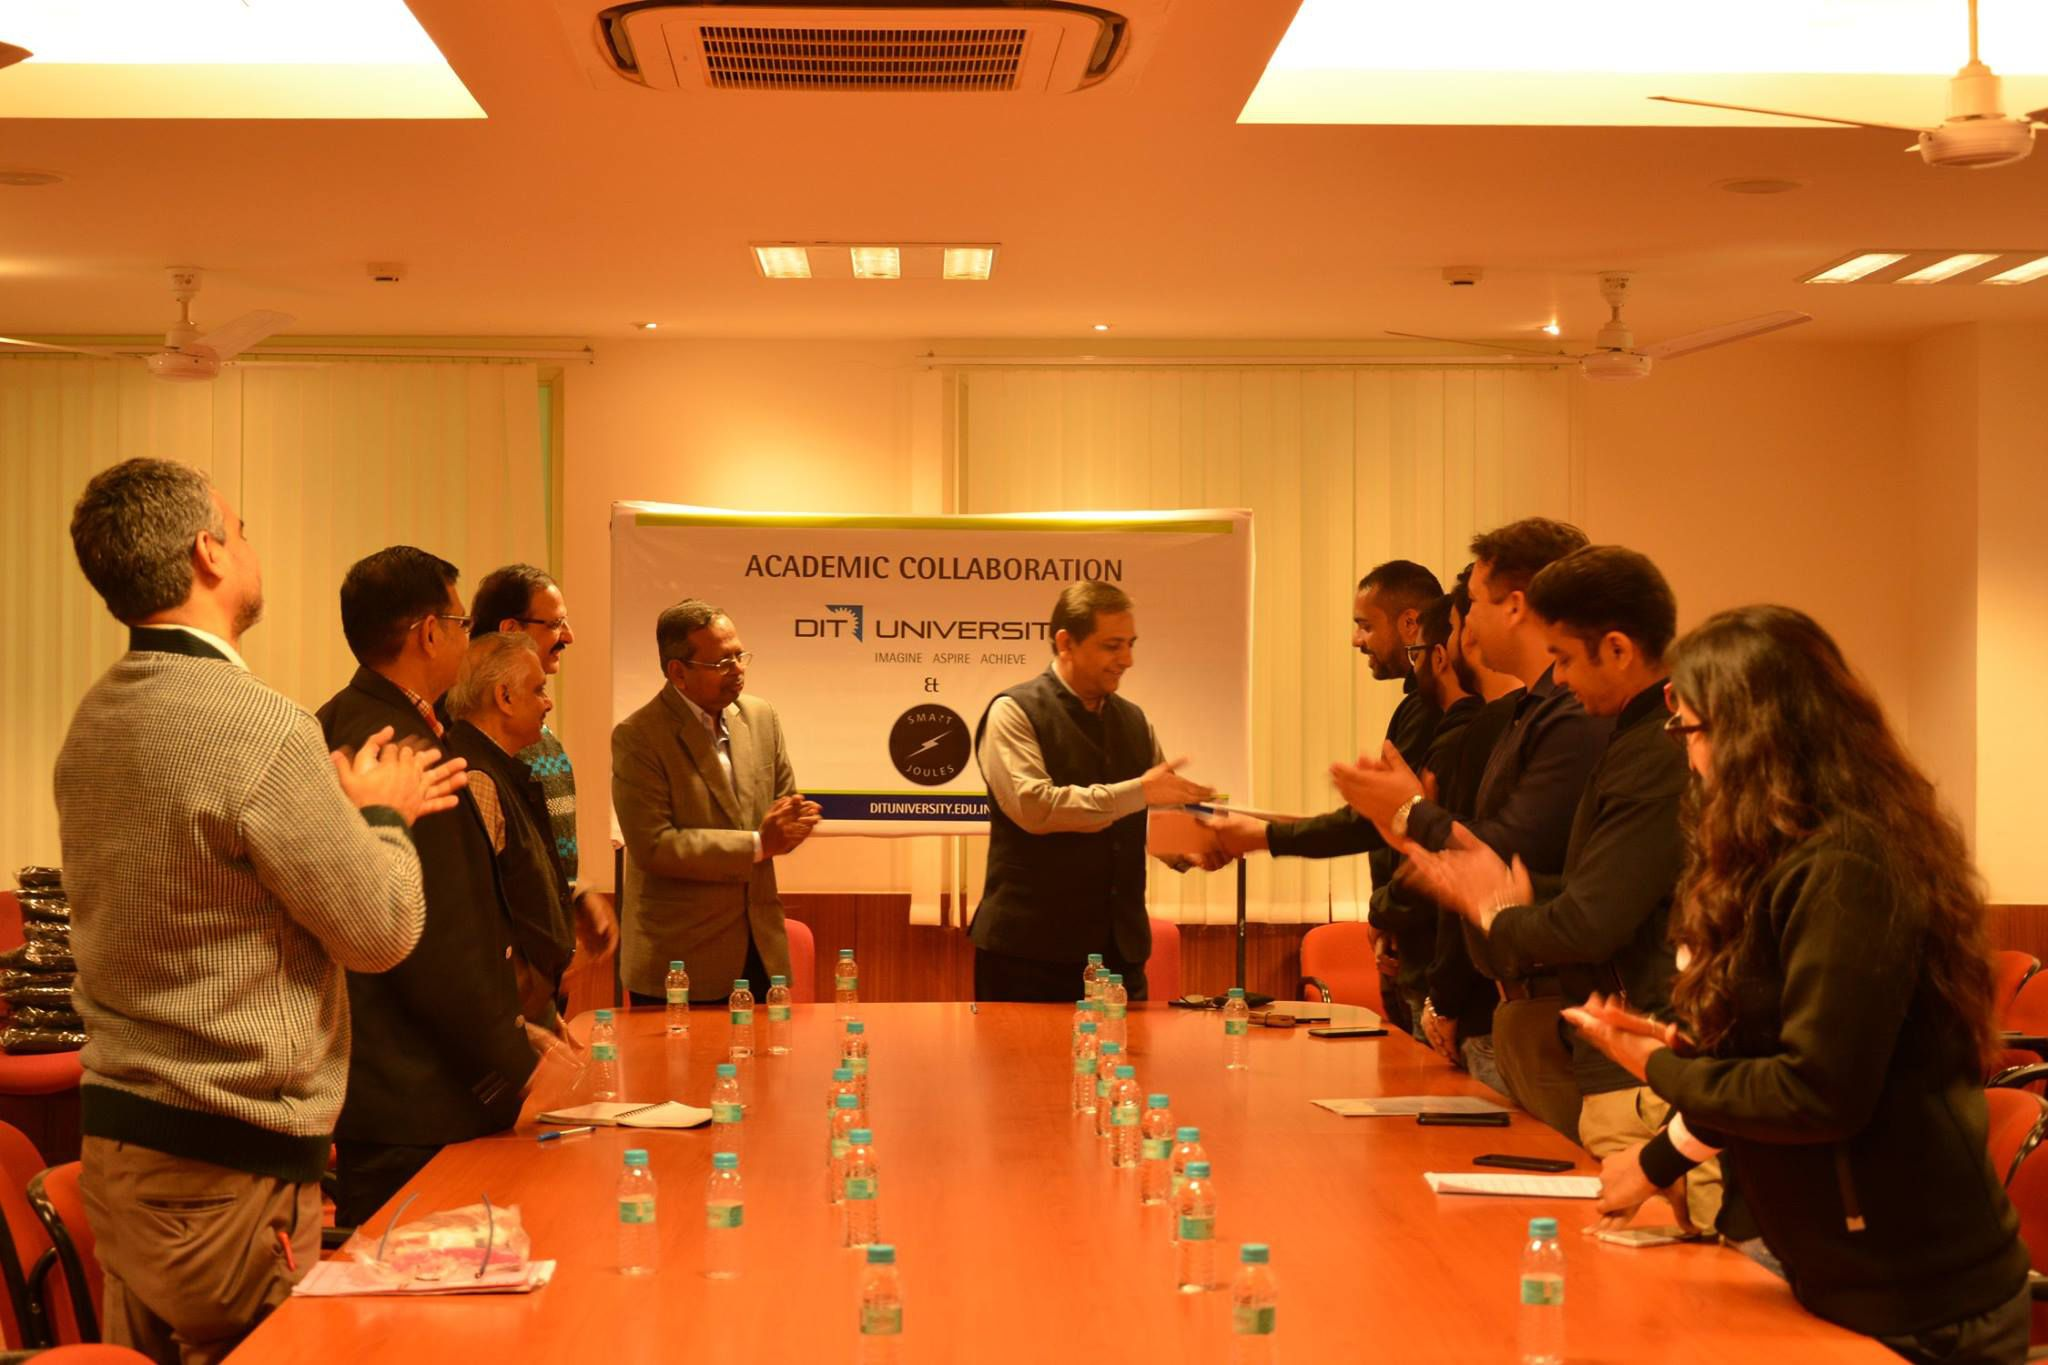 Academic collaboration MOU signed between DIT University and SmartJoules